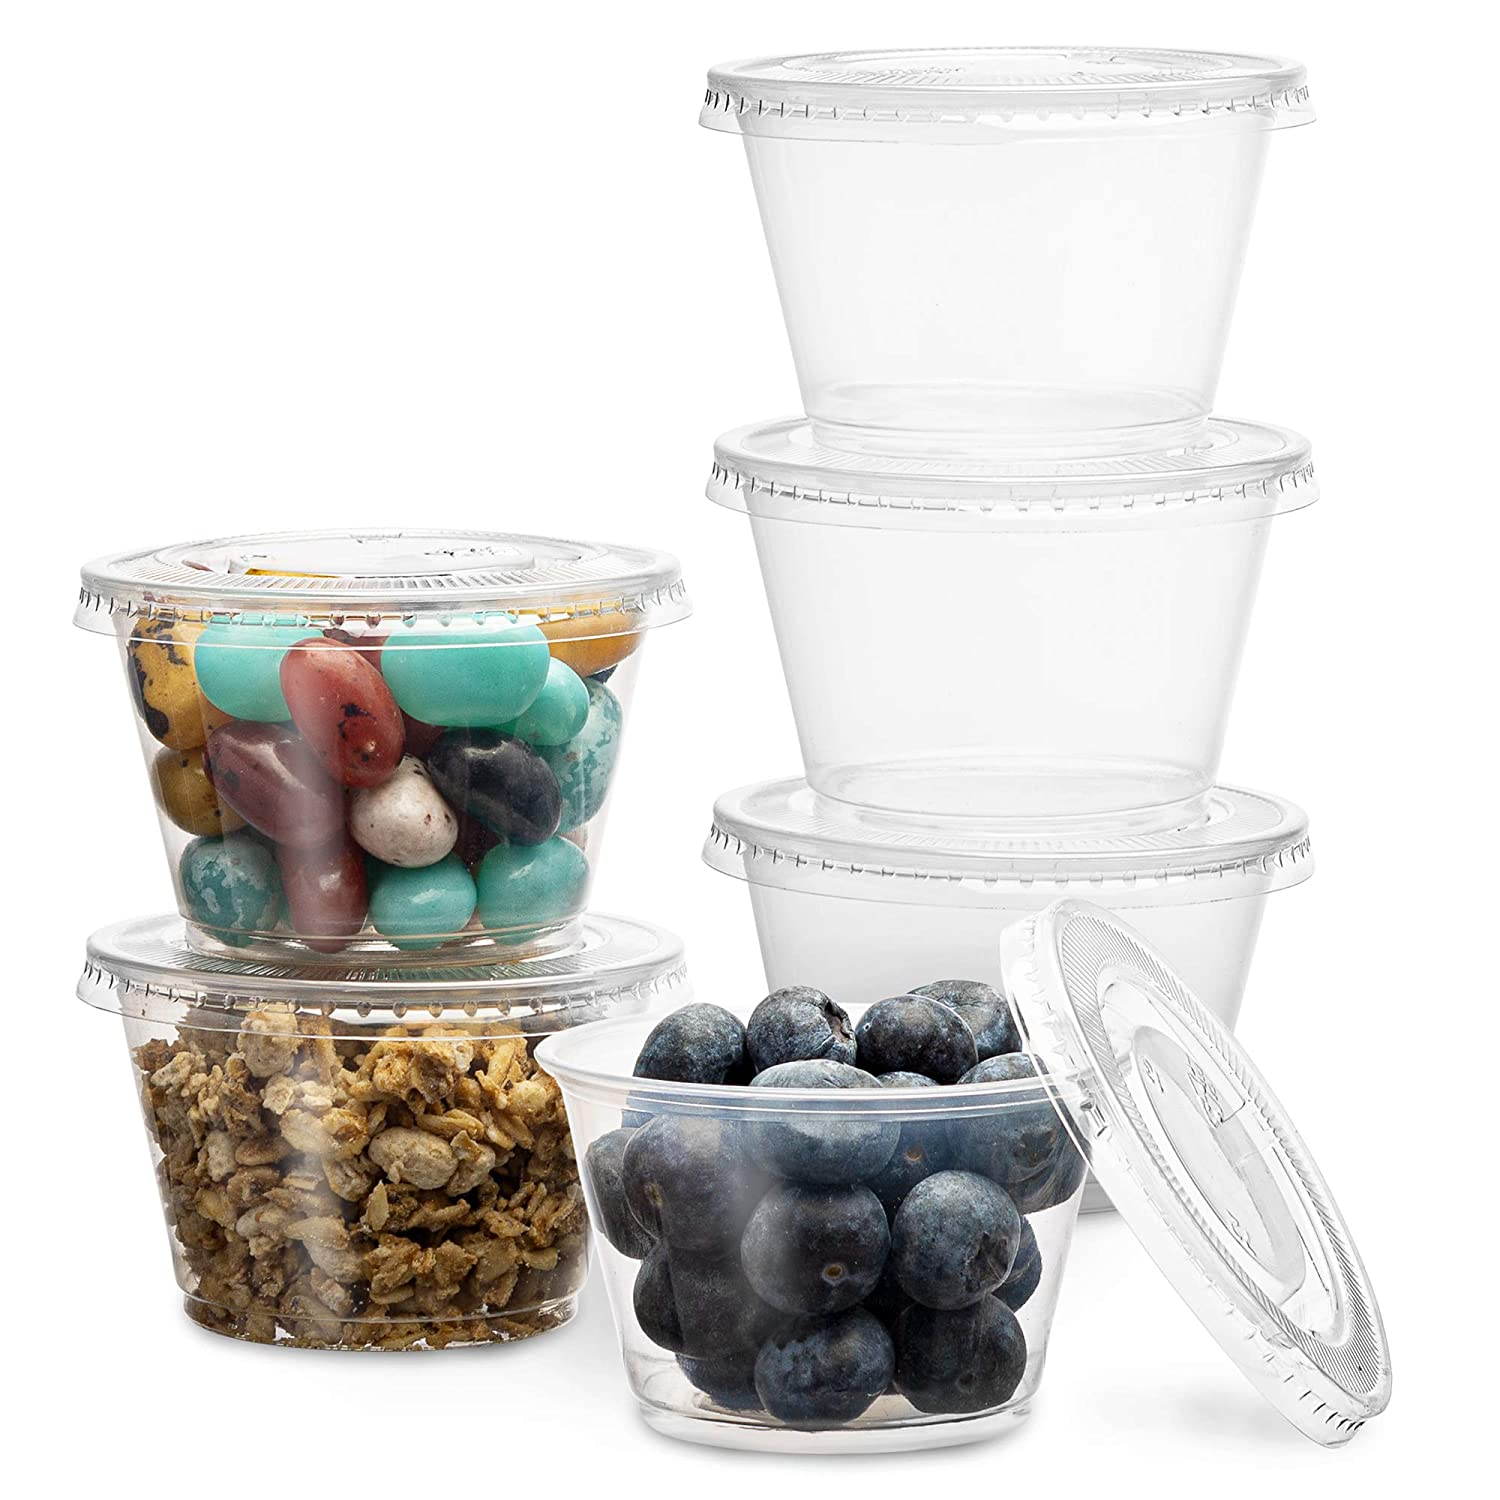 PlastiMade Clear Disposable Plastic Portion Cups with Lids (200 Sets - 4 Oz) - Disposable Condiment Cups, Sauce/Dip/Dressing Cups, Souffle Cups & Jello Shot Cups with Lids | Great Sampling Container